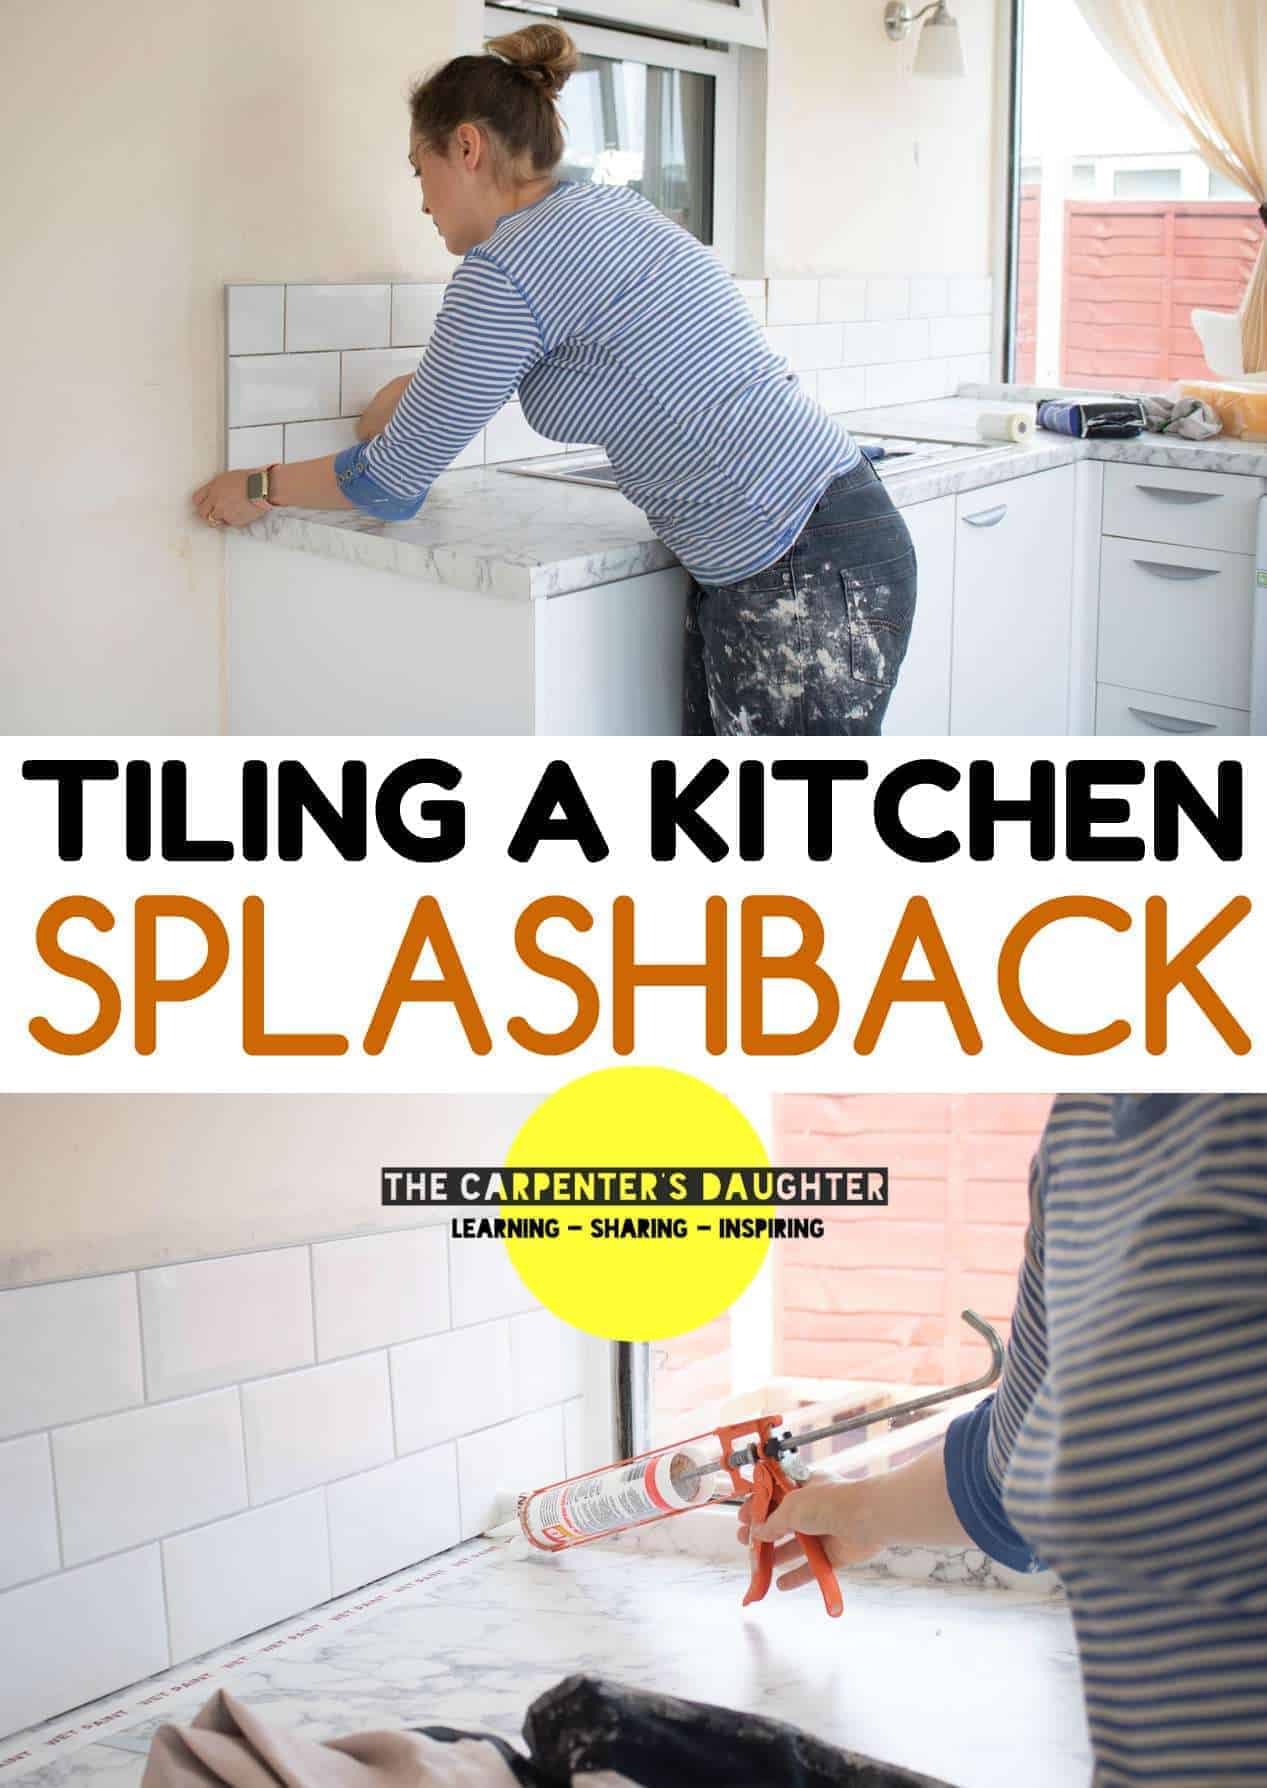 Tiling a kitchen splashback pinterest pin